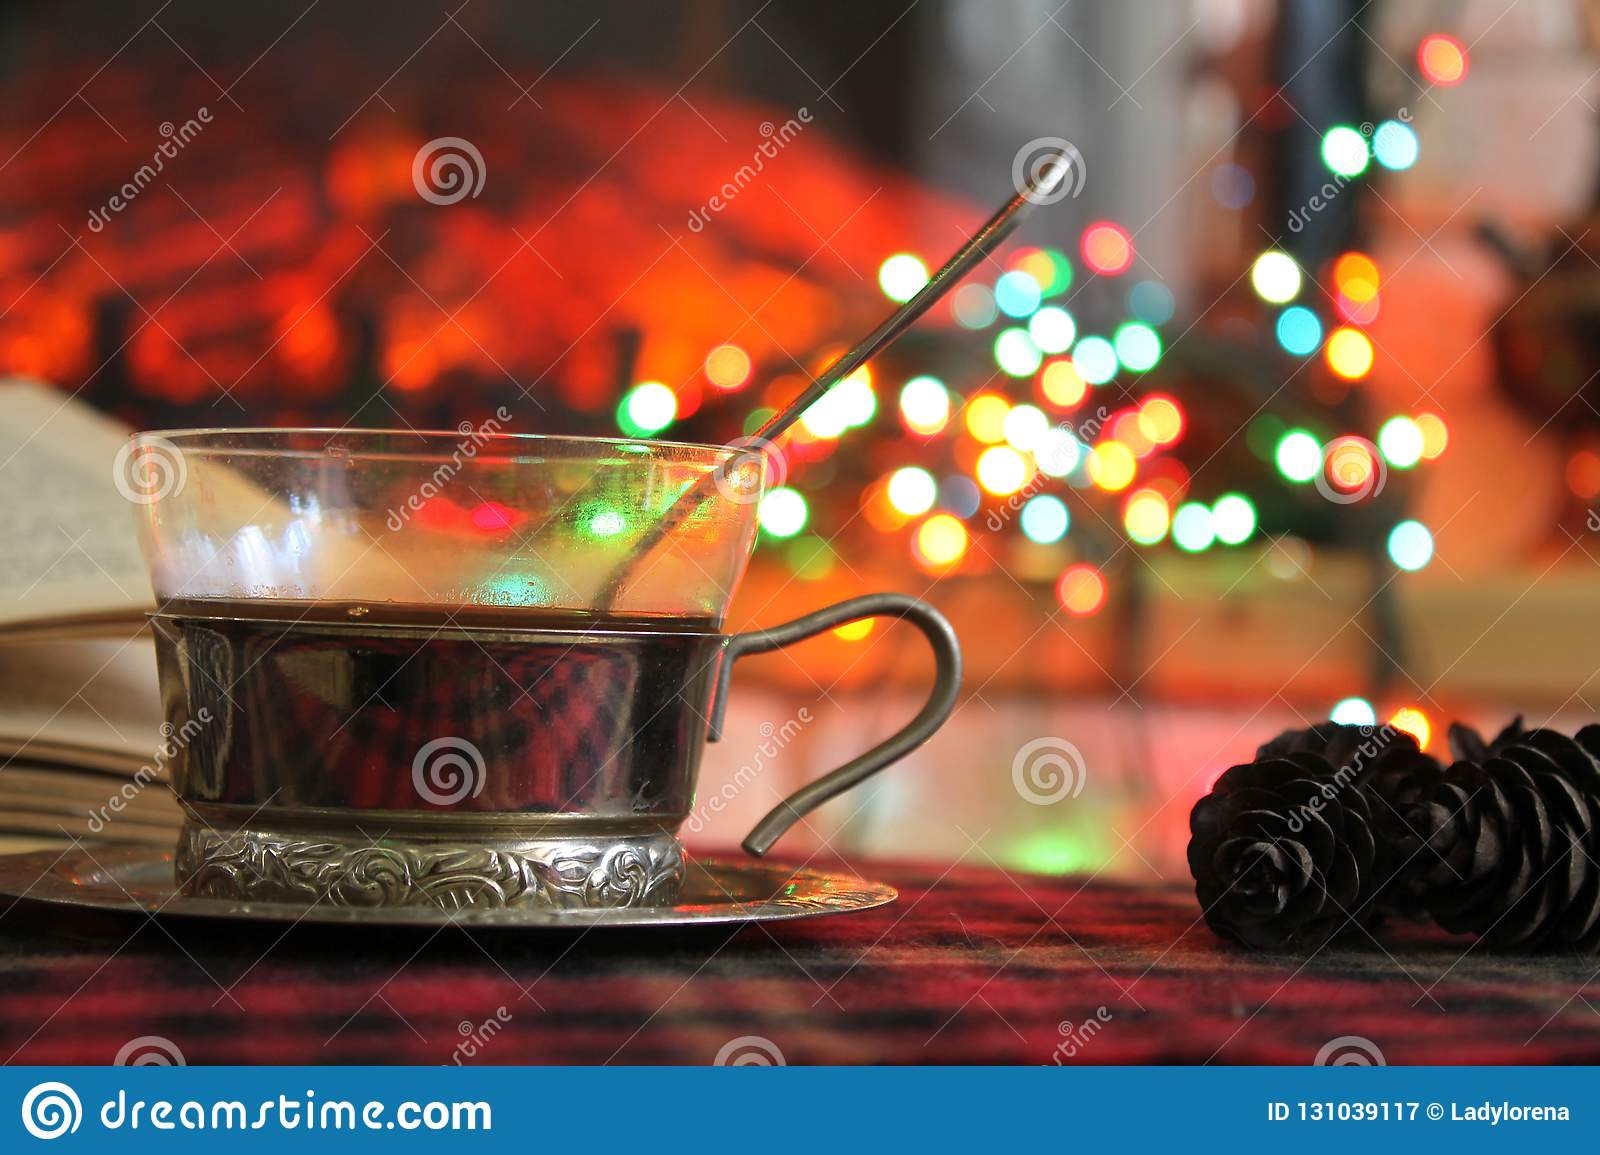 Transparent Cup of tea in a steel Cup holder on the background of a burning fireplace and Christmas garland